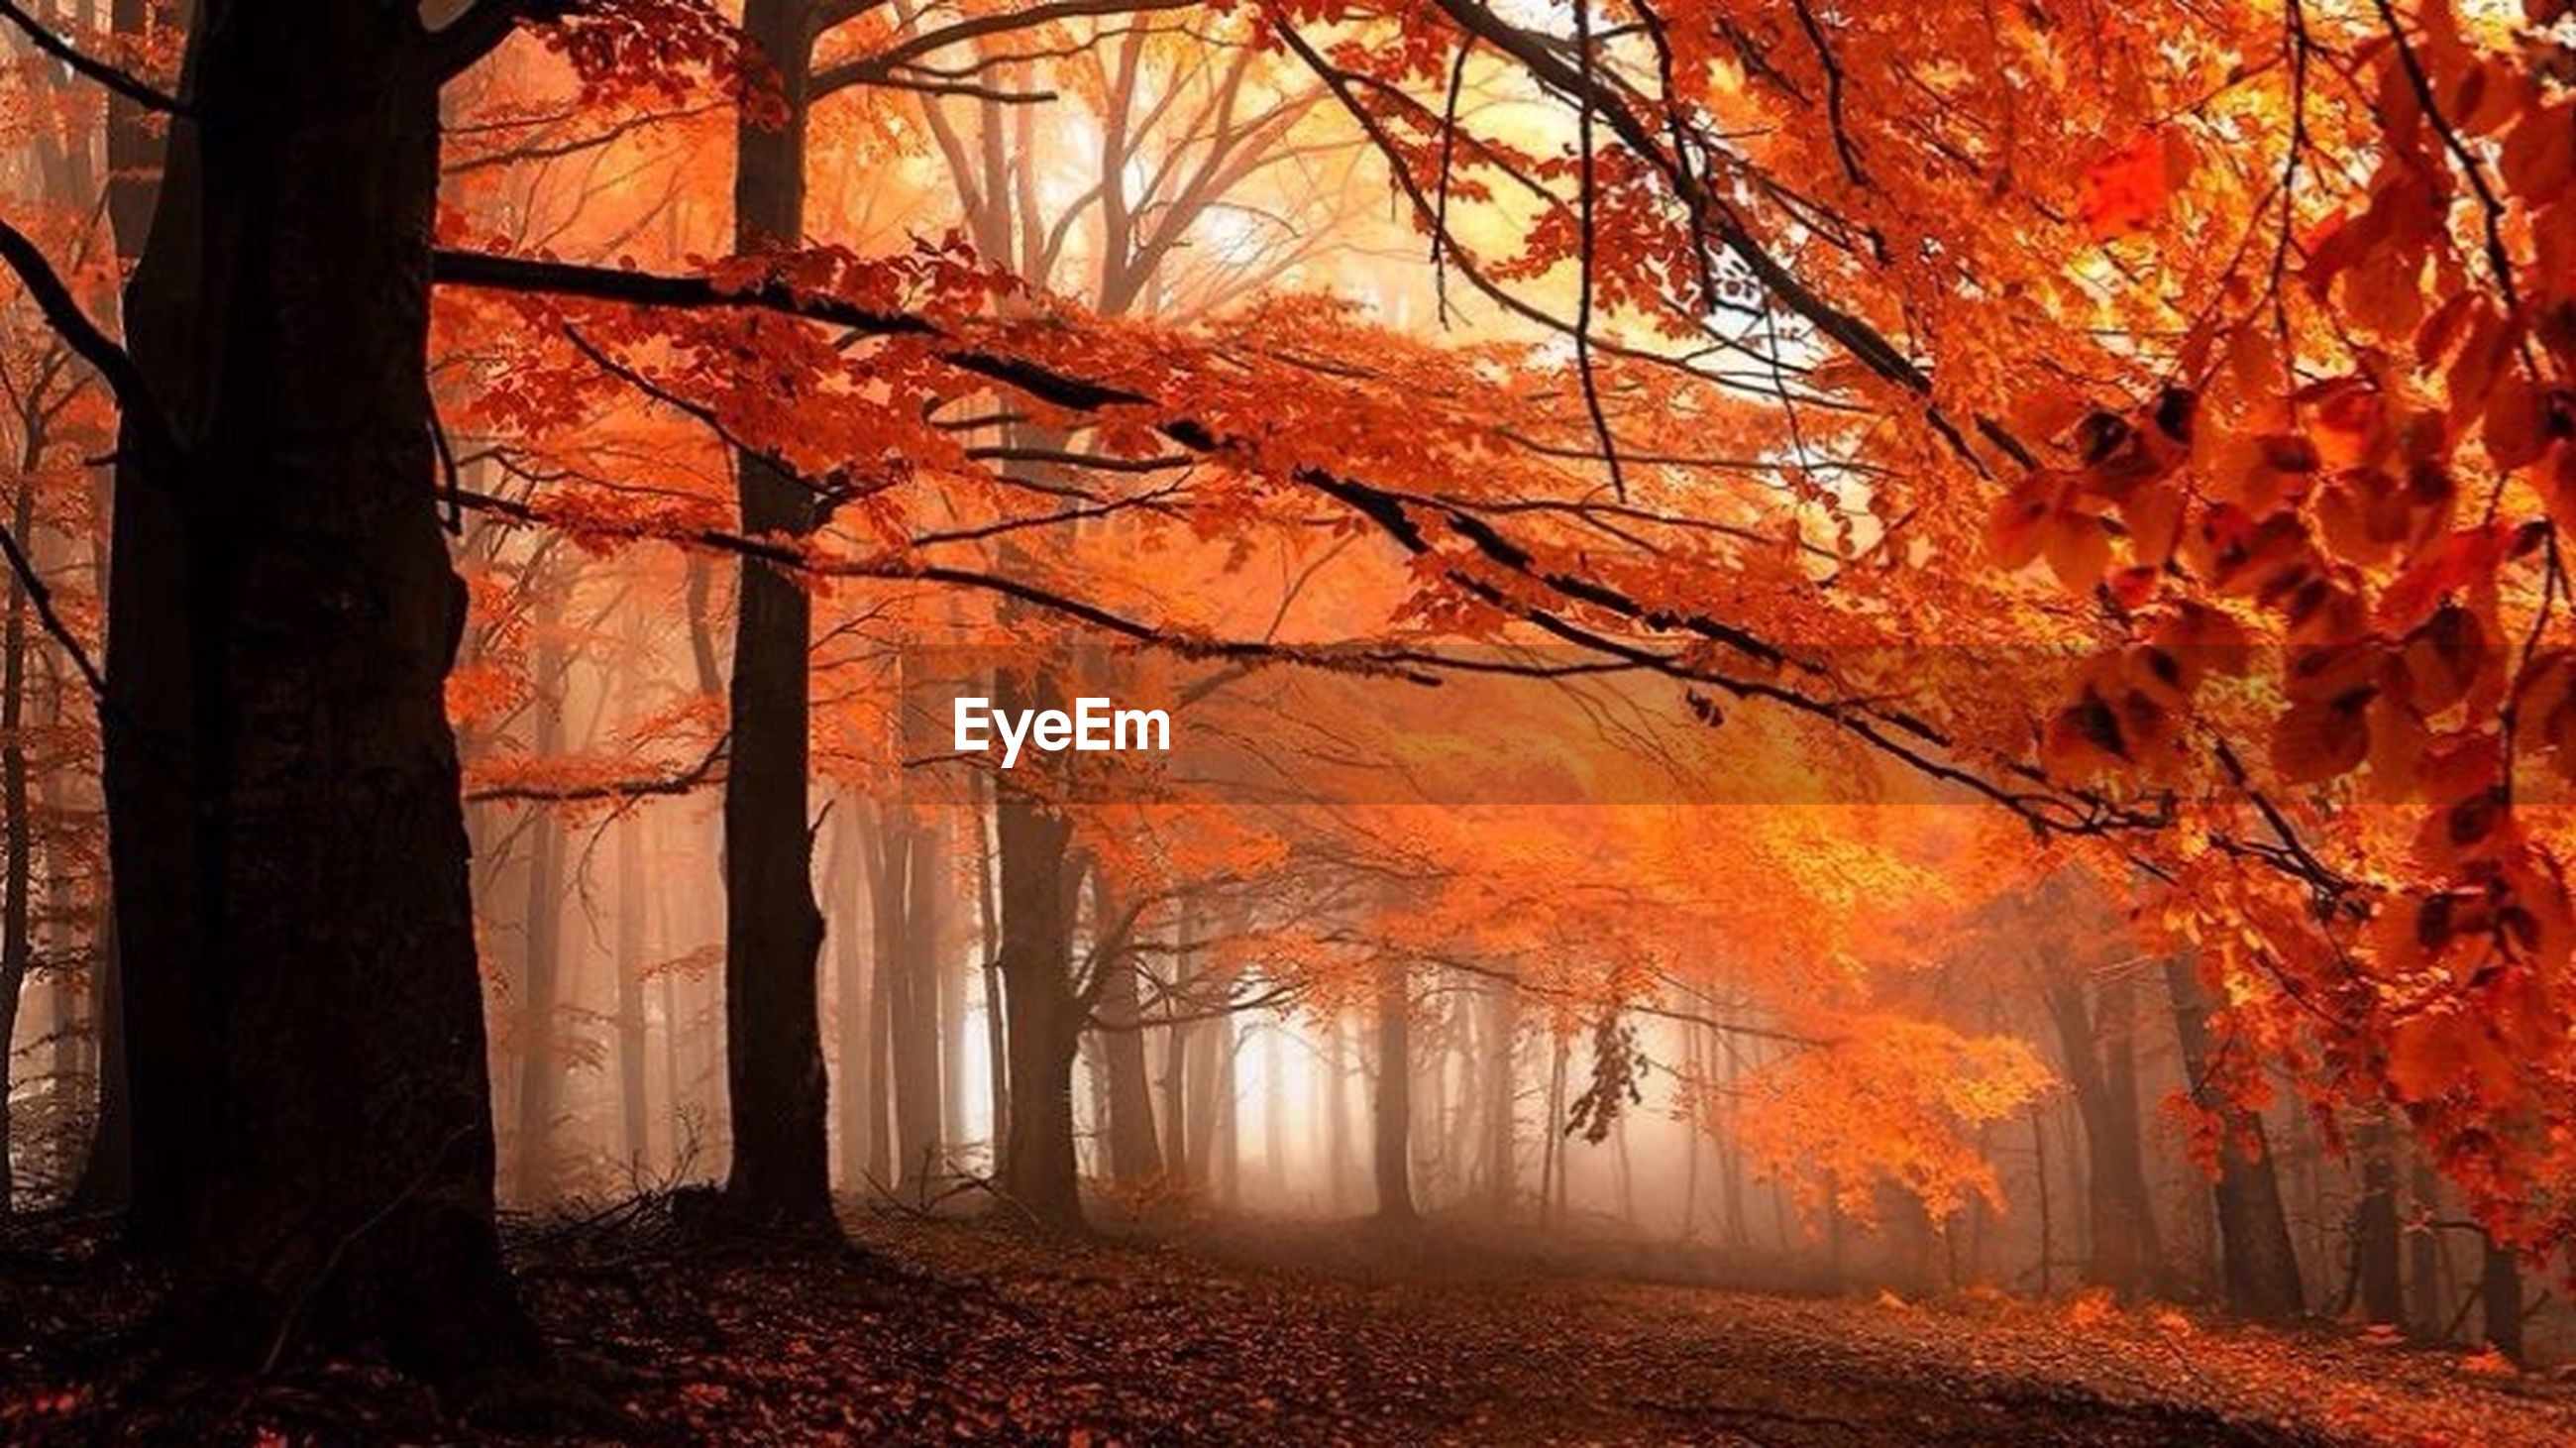 autumn, tree, change, season, orange color, branch, tranquility, nature, tree trunk, beauty in nature, leaf, growth, bare tree, tranquil scene, scenics, outdoors, no people, fall, fallen, day